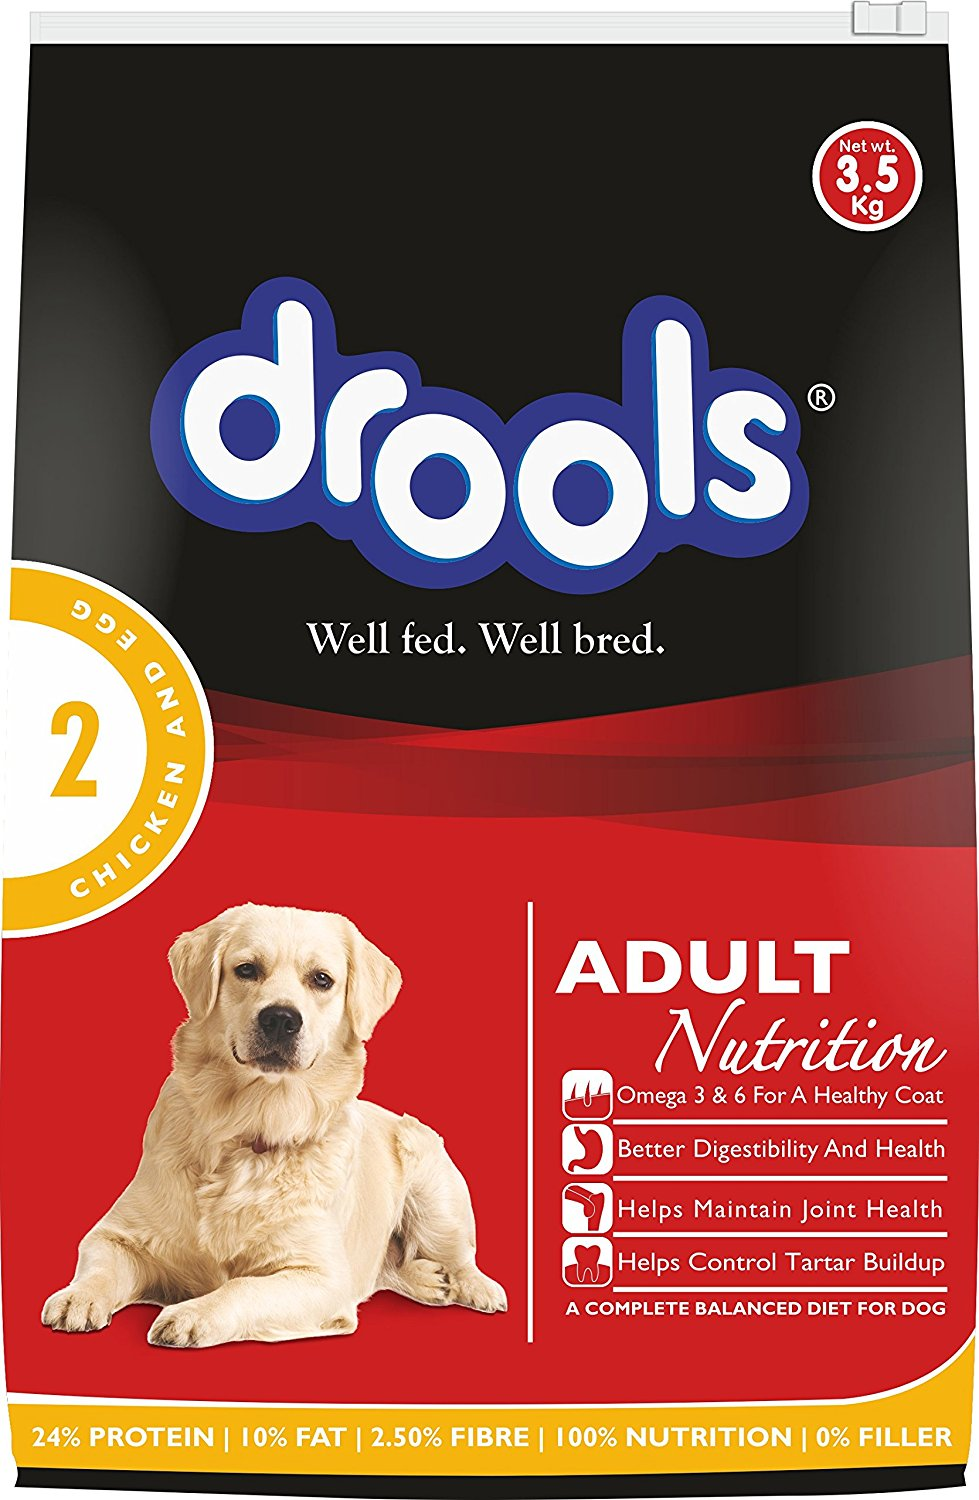 Drools Chicken and Egg Adult - 3.5 kg